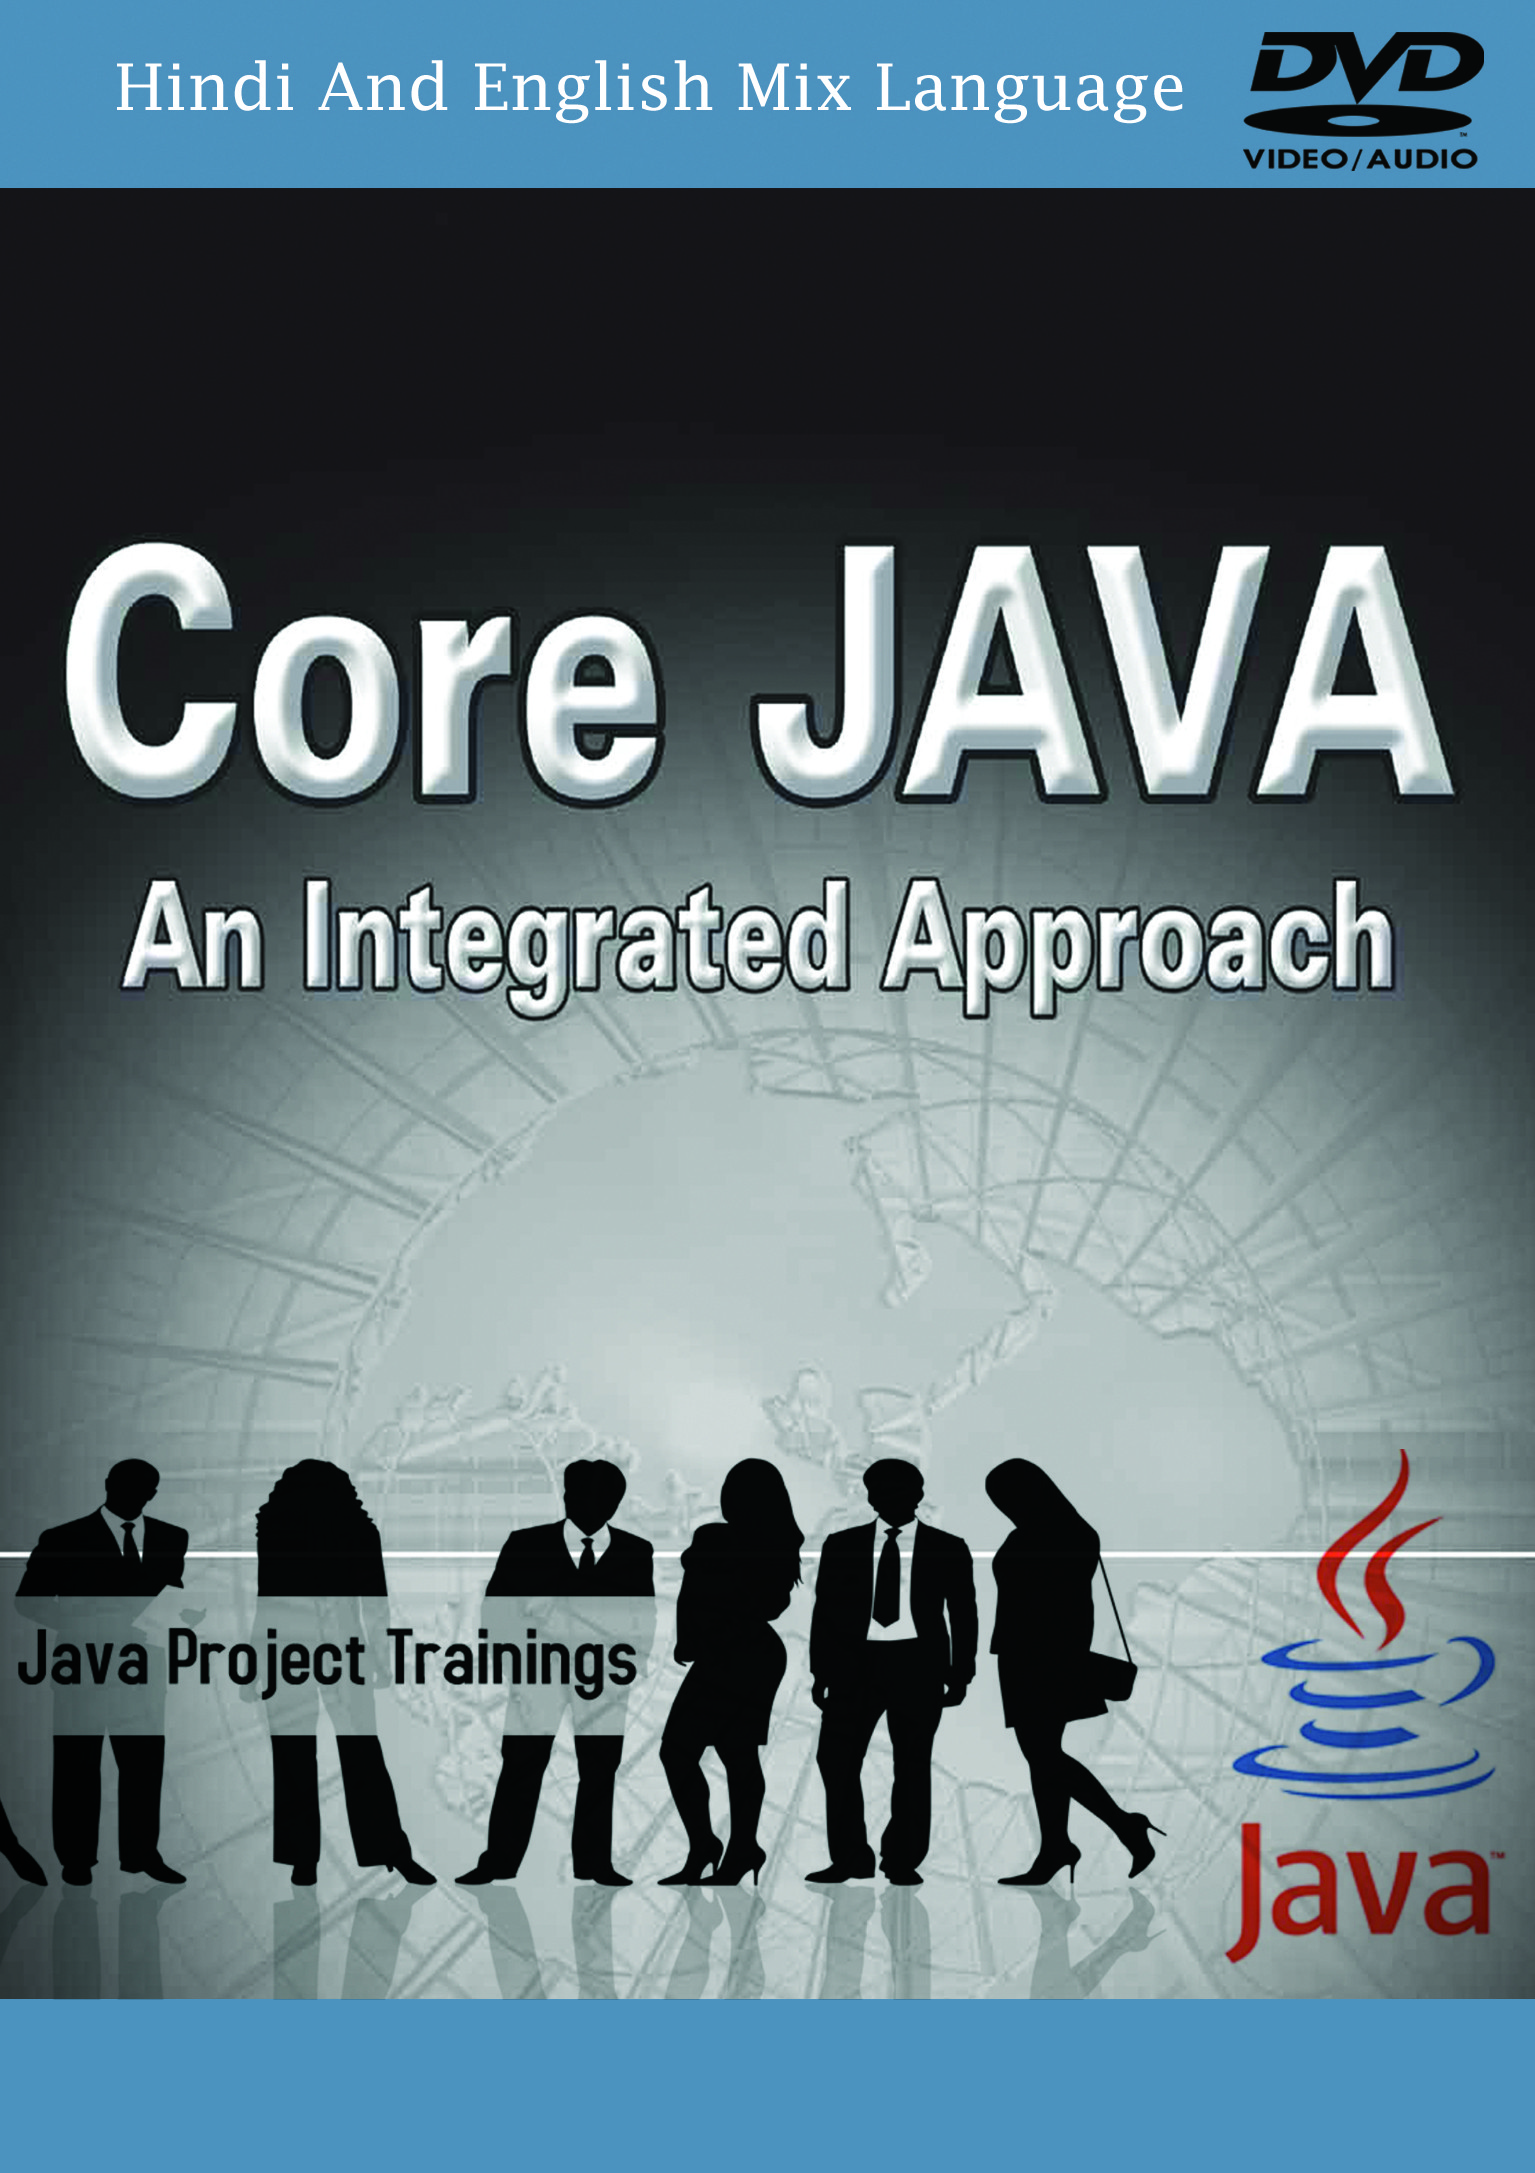 Lsoit Core Java Programming Tutorials DVD(DVD)